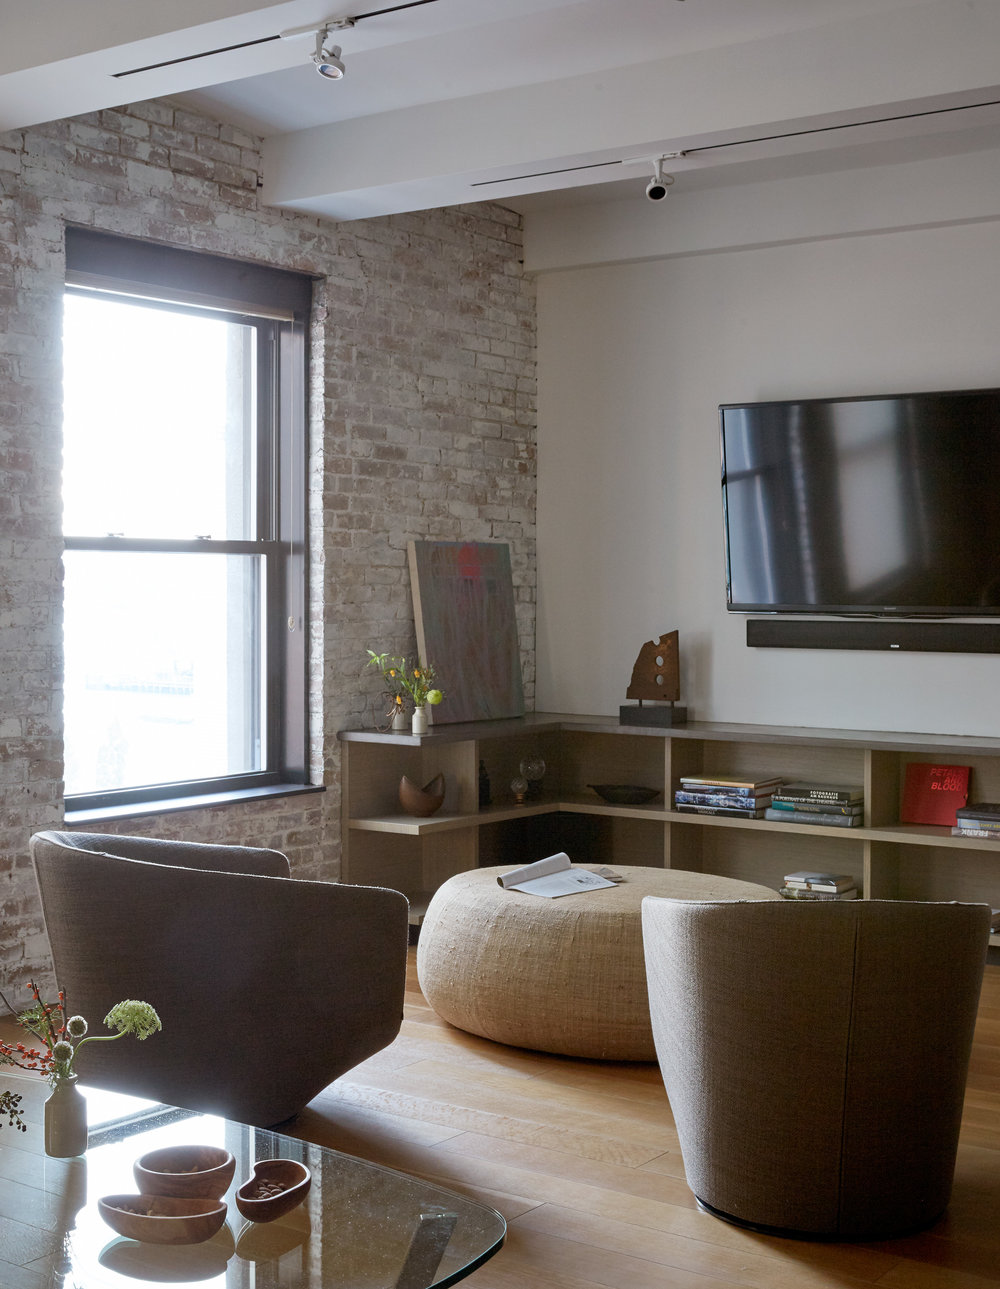 west-village-loft-sitting-area.jpg